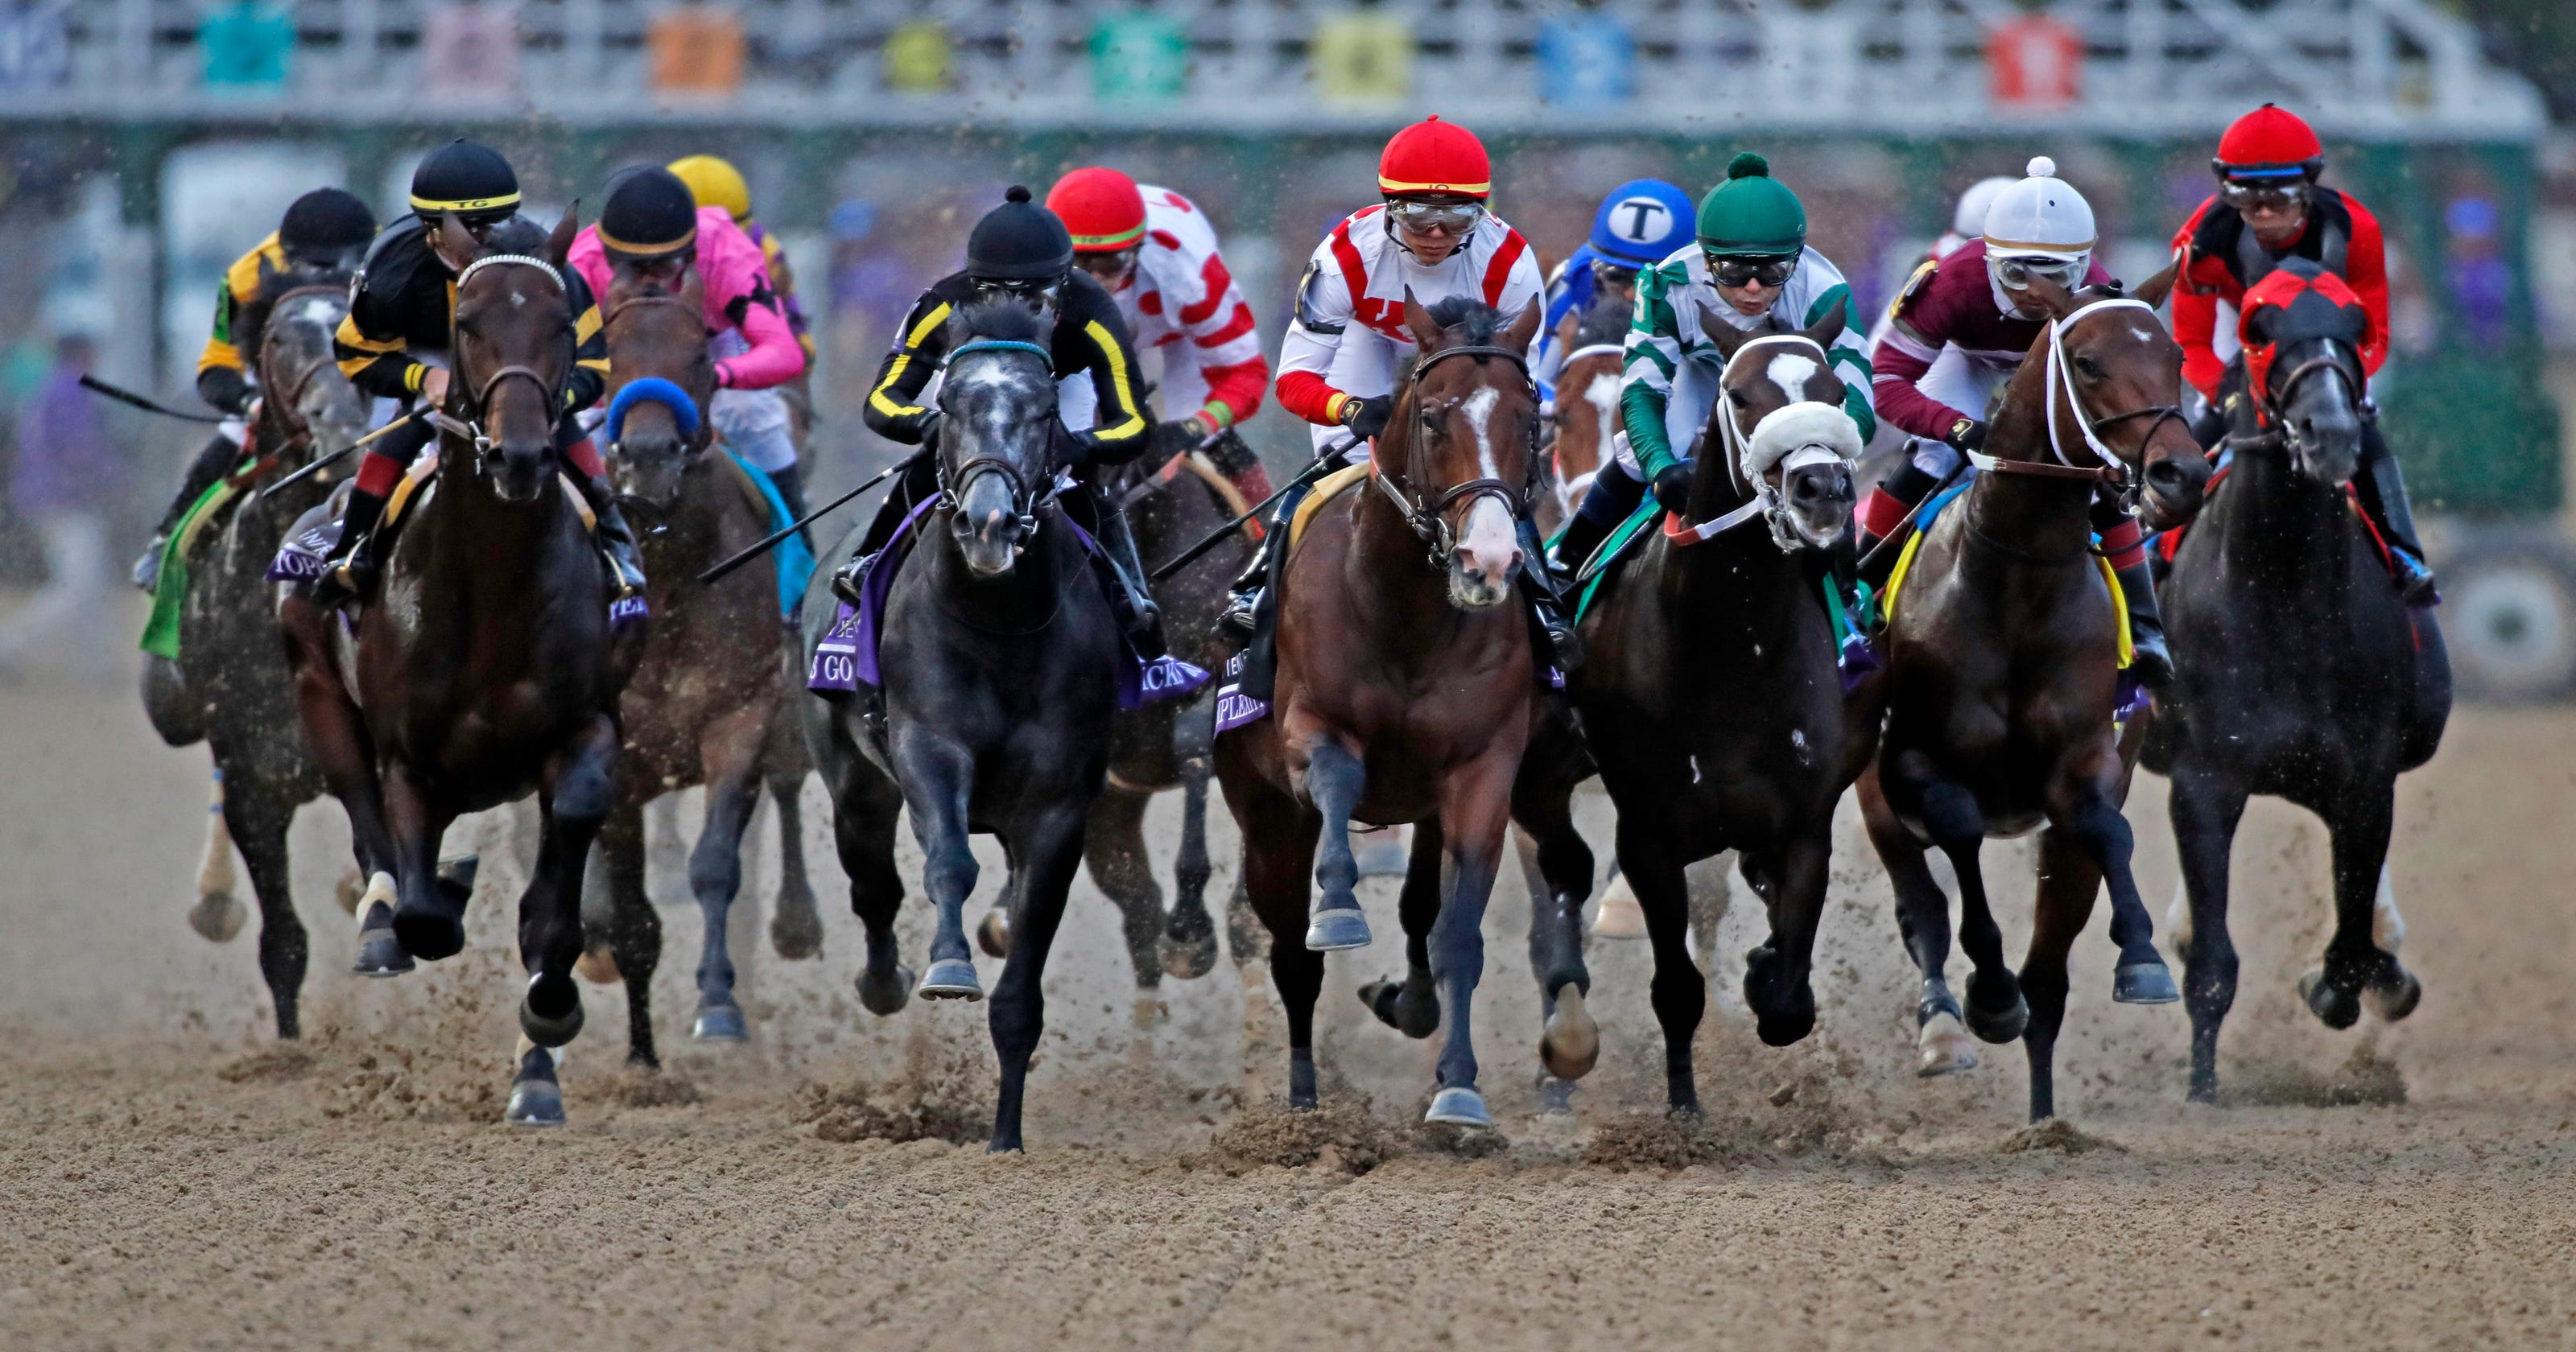 Horse Racing Can Produce Some Unreal Experiences